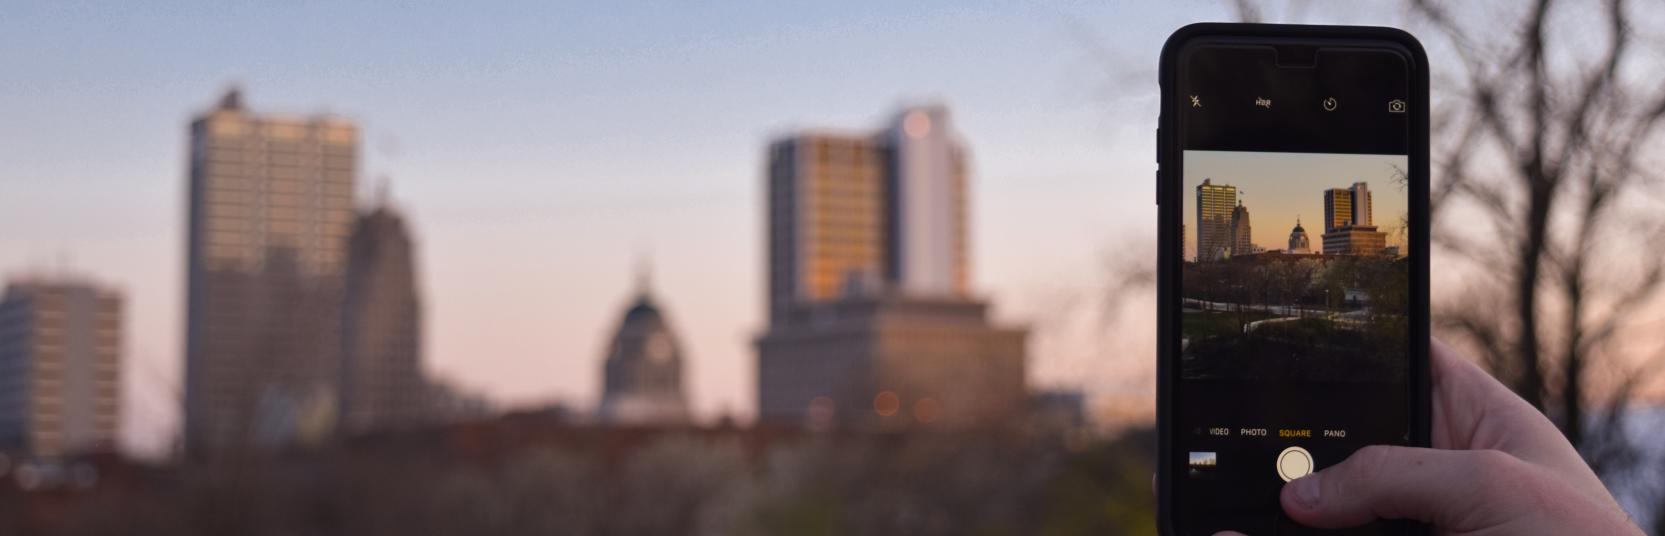 The Best Places to Take Photos in Fort Wayne, Indiana